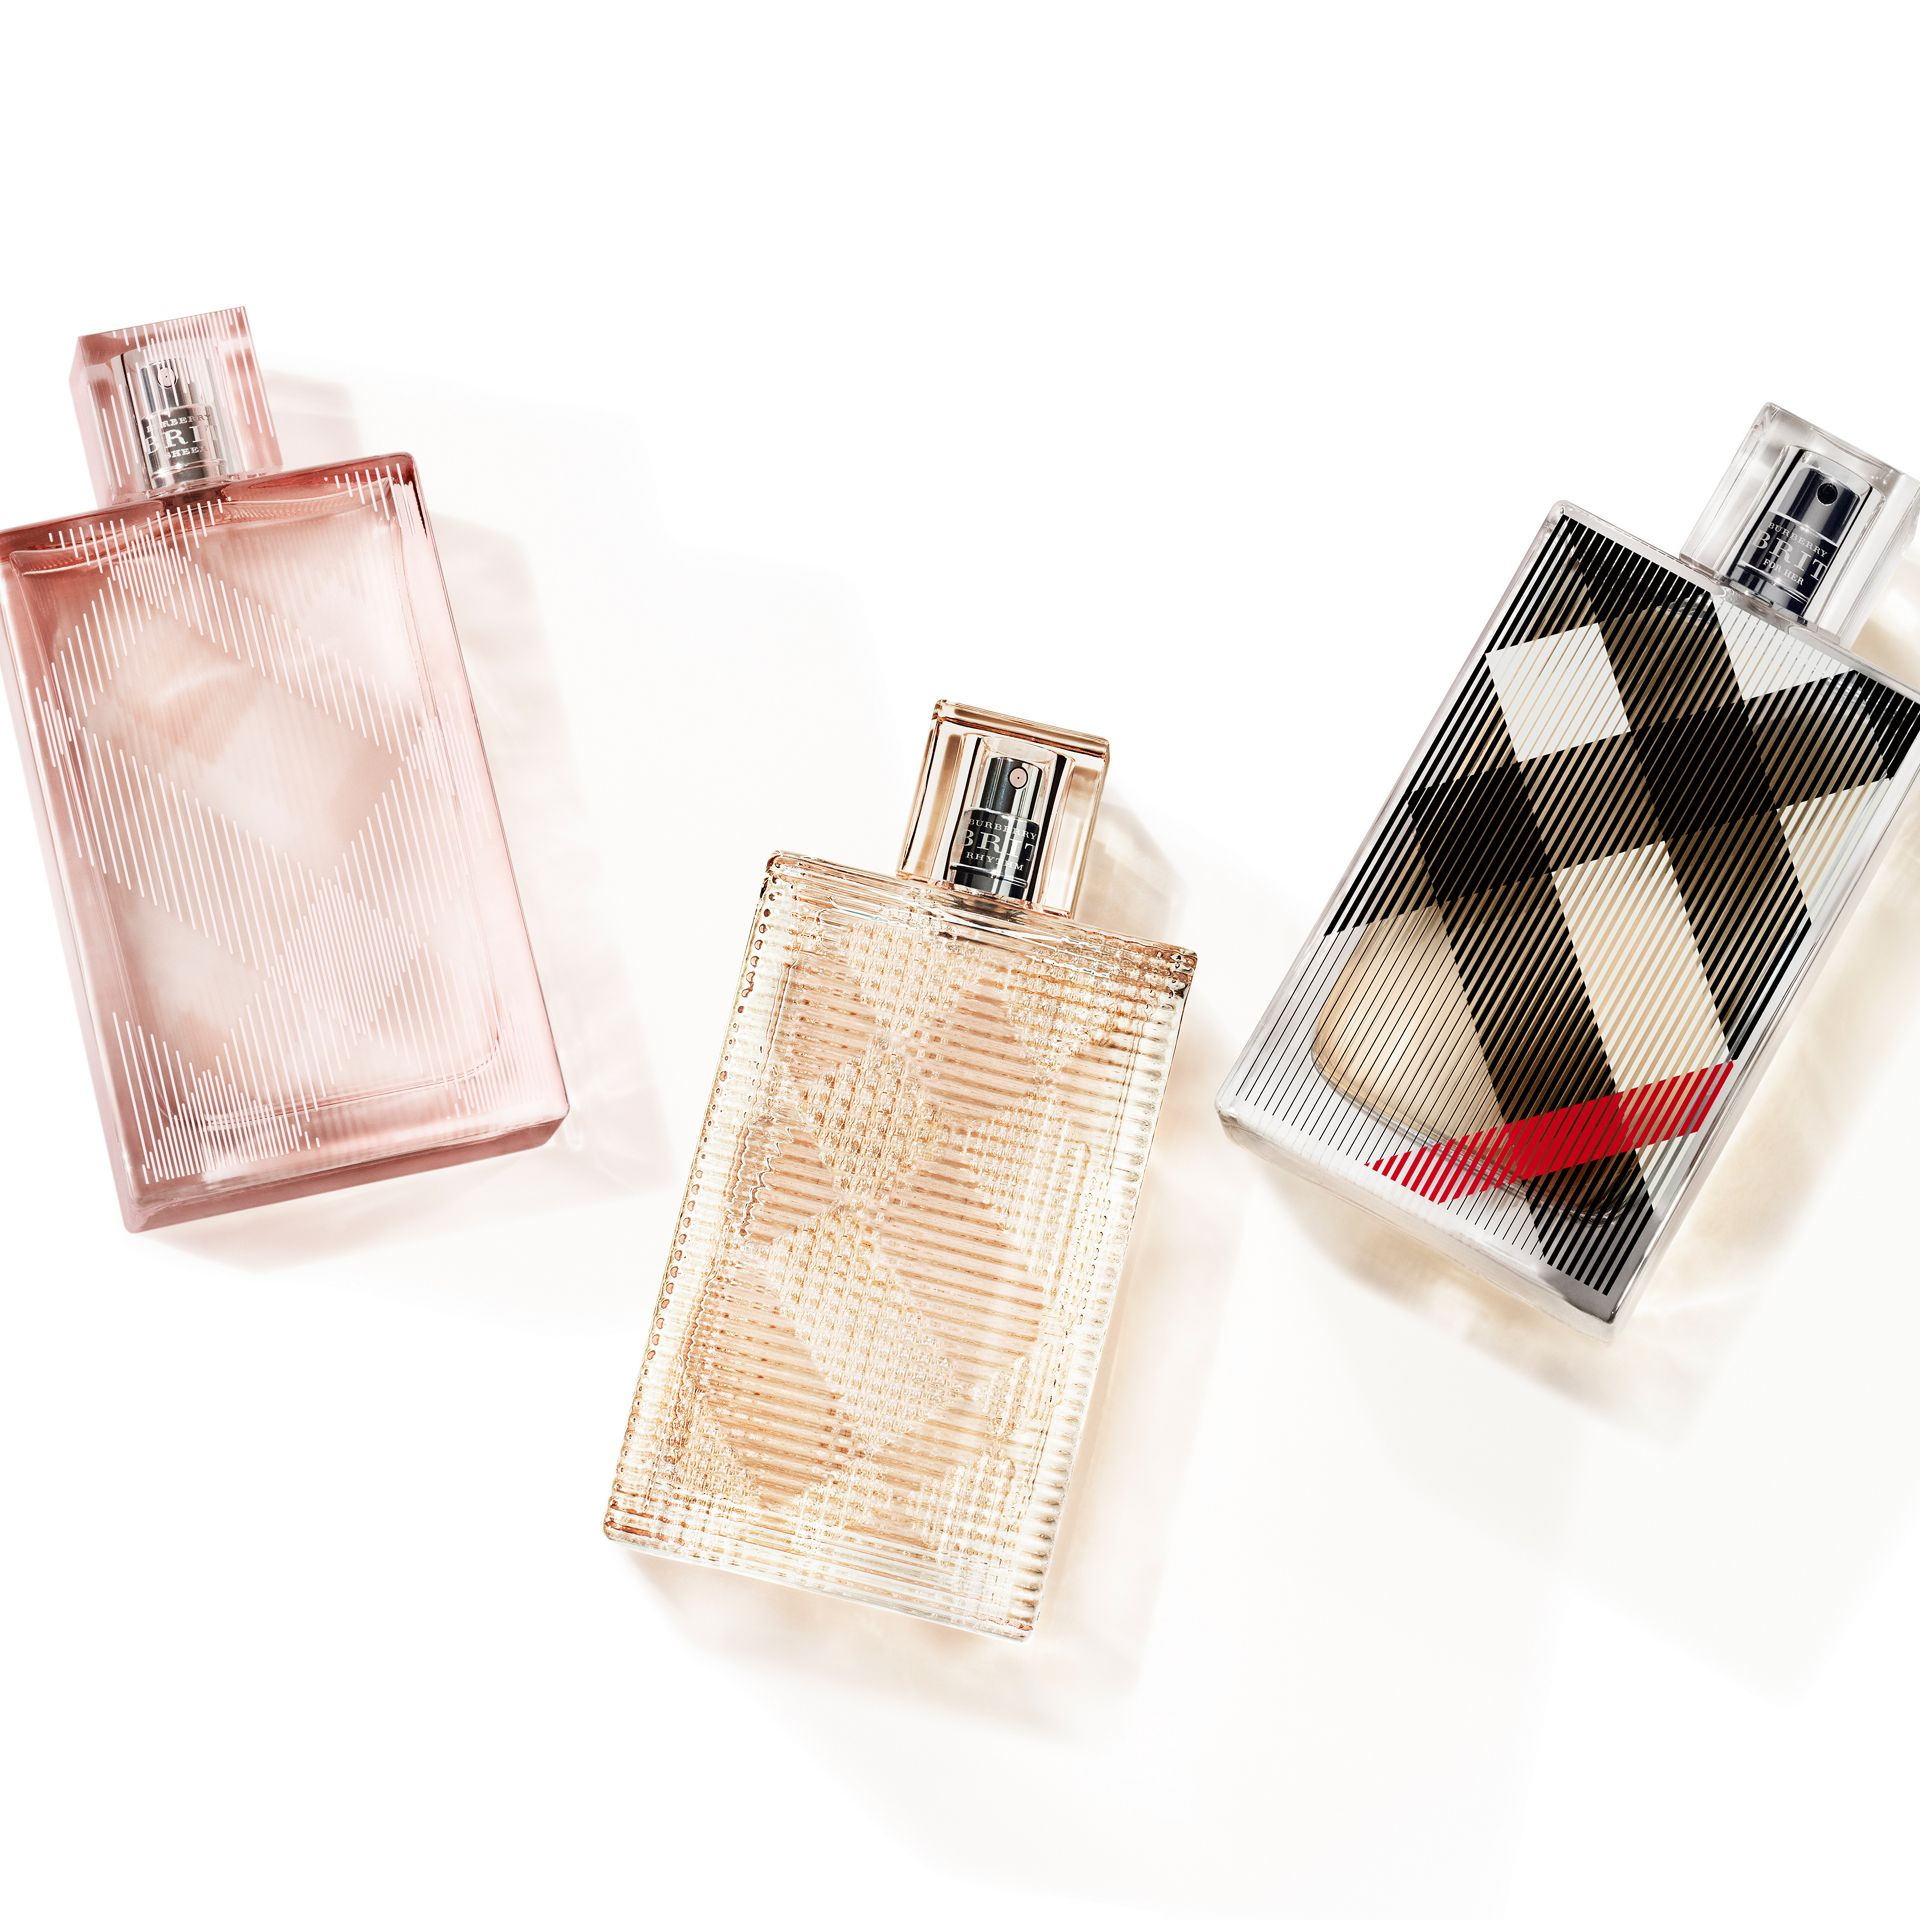 Eau de Toilette Burberry Brit Sheer 200 ml - photo de la galerie 3